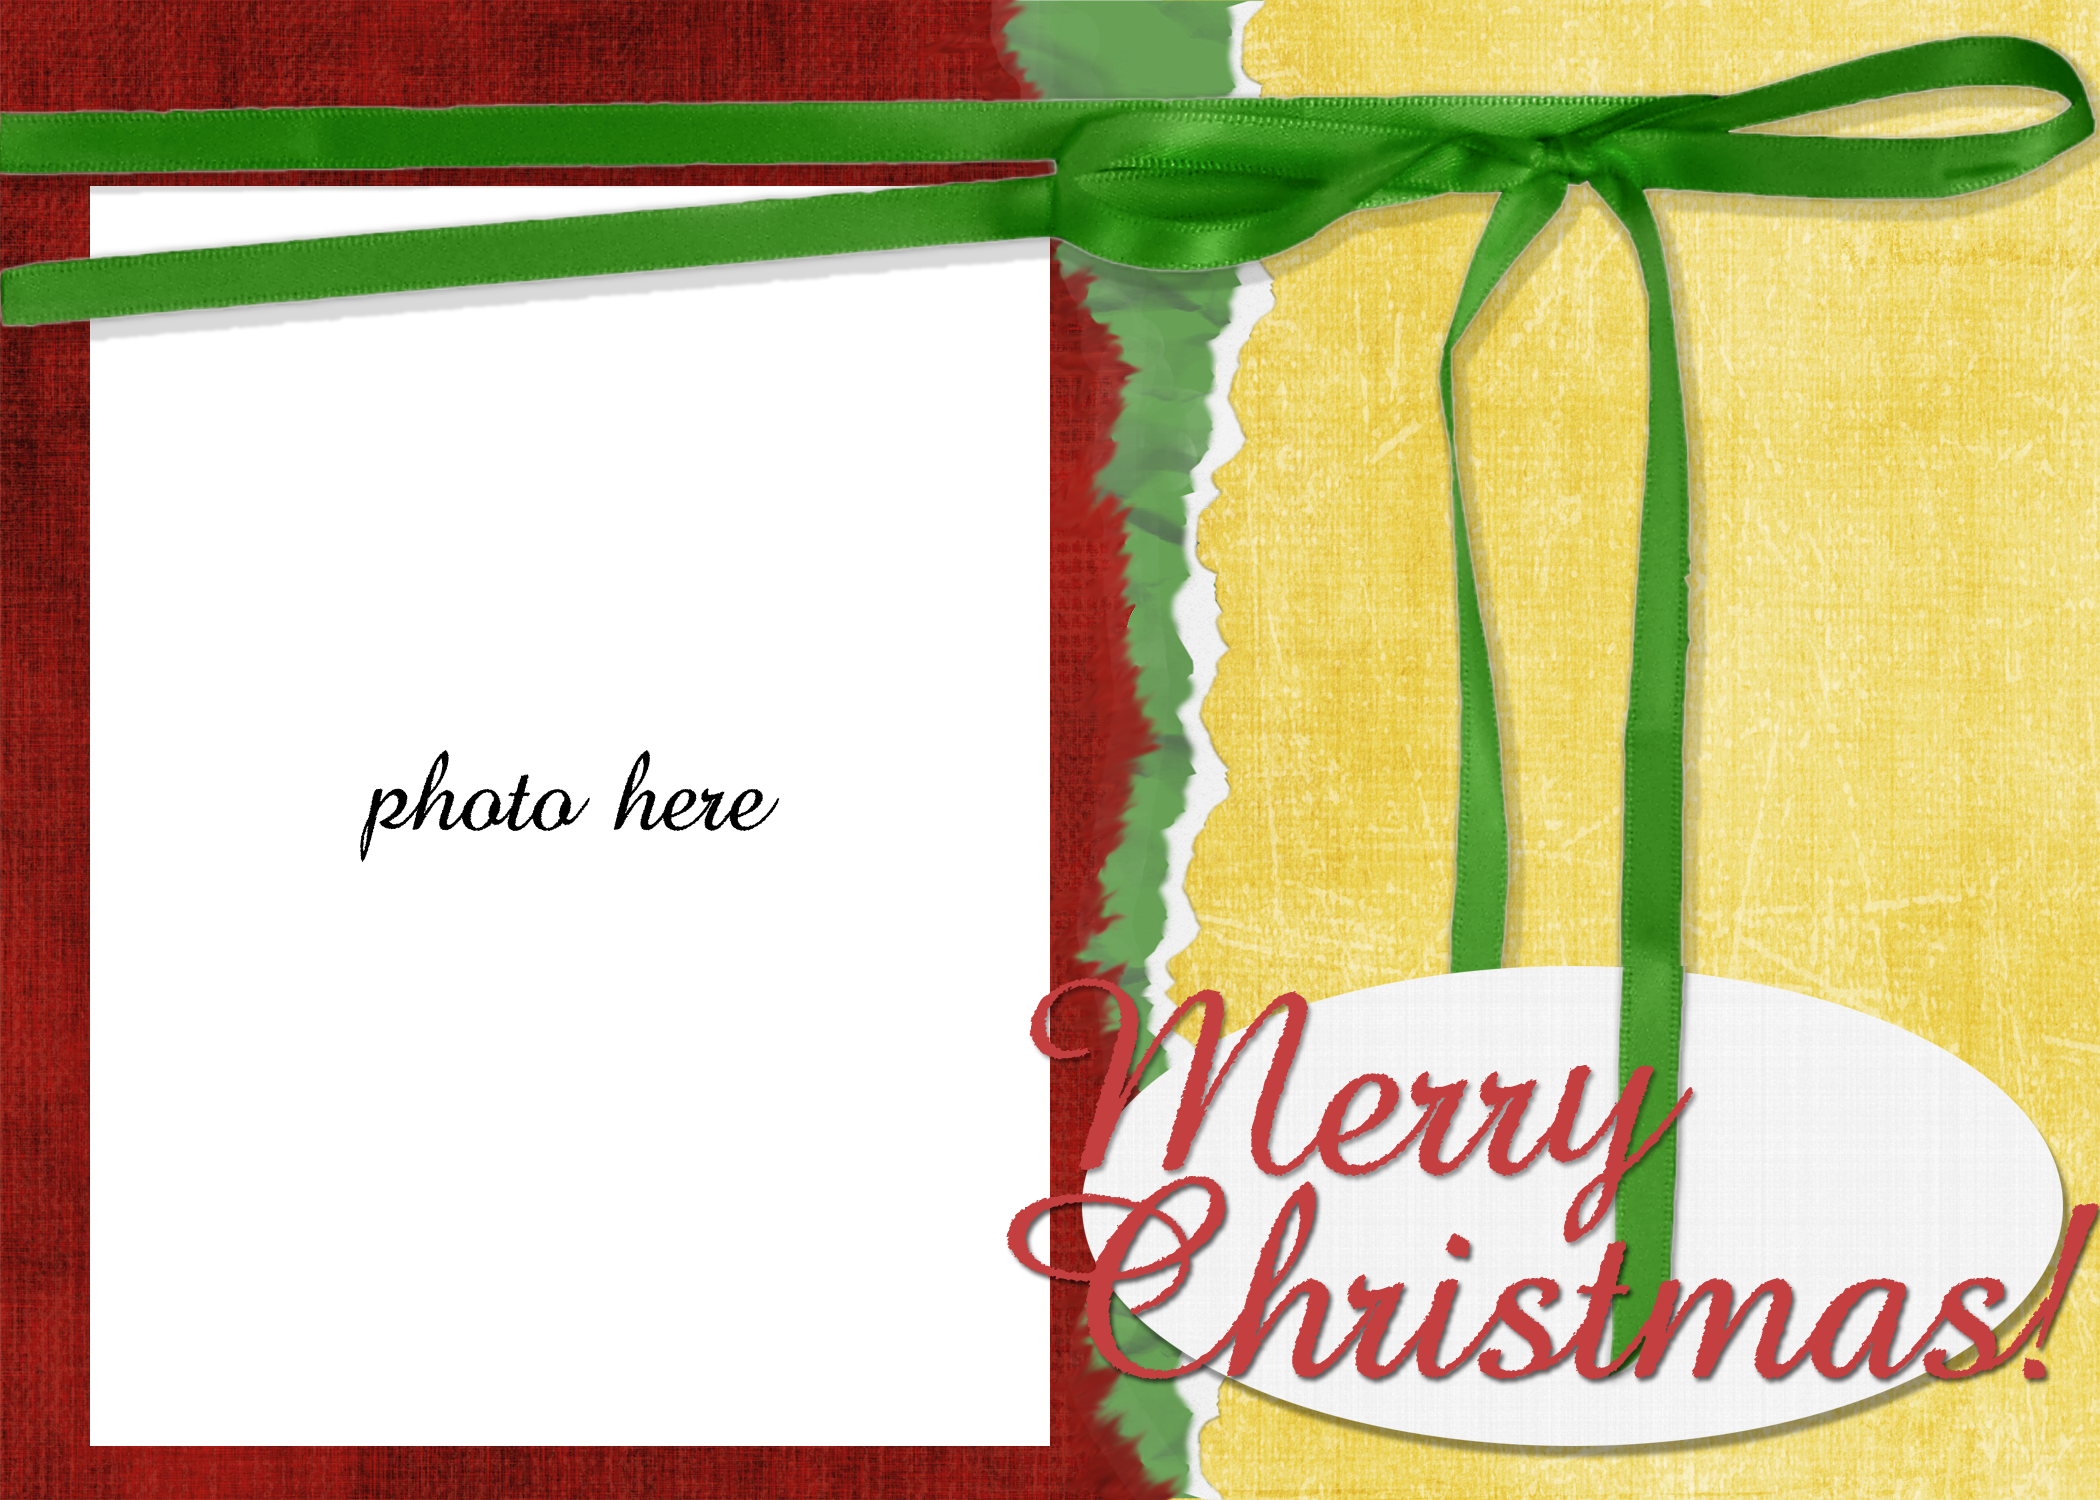 make christmas e cards related topics - Create Christmas Cards